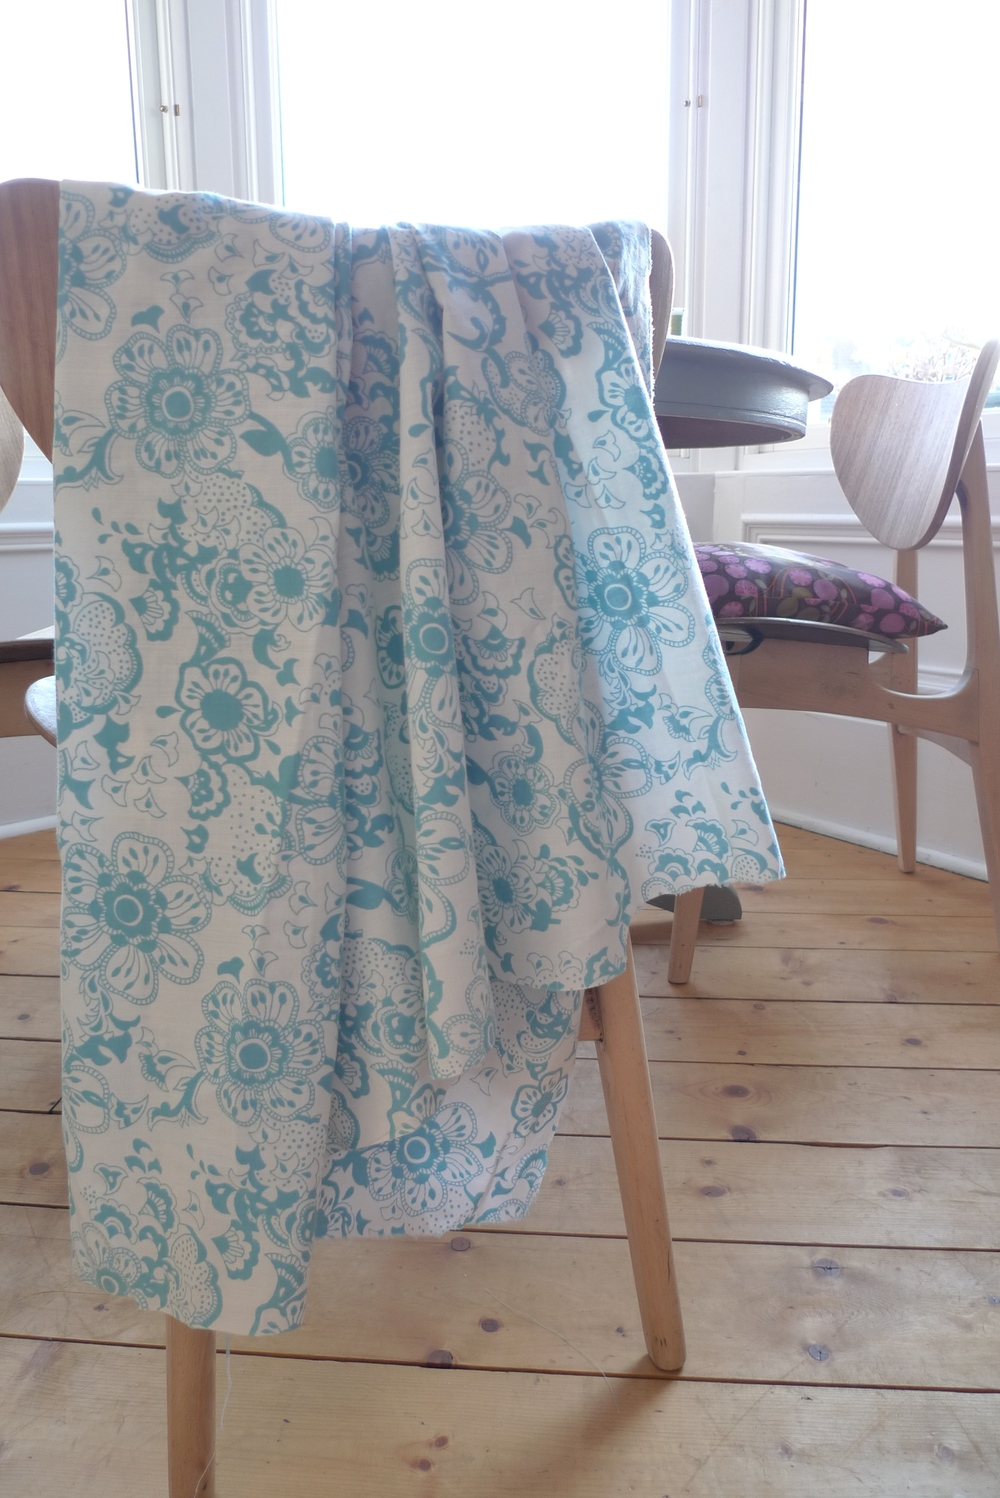 This is a lightweight soft cotton, it drapes well, but it's too flimsy for a cushion.